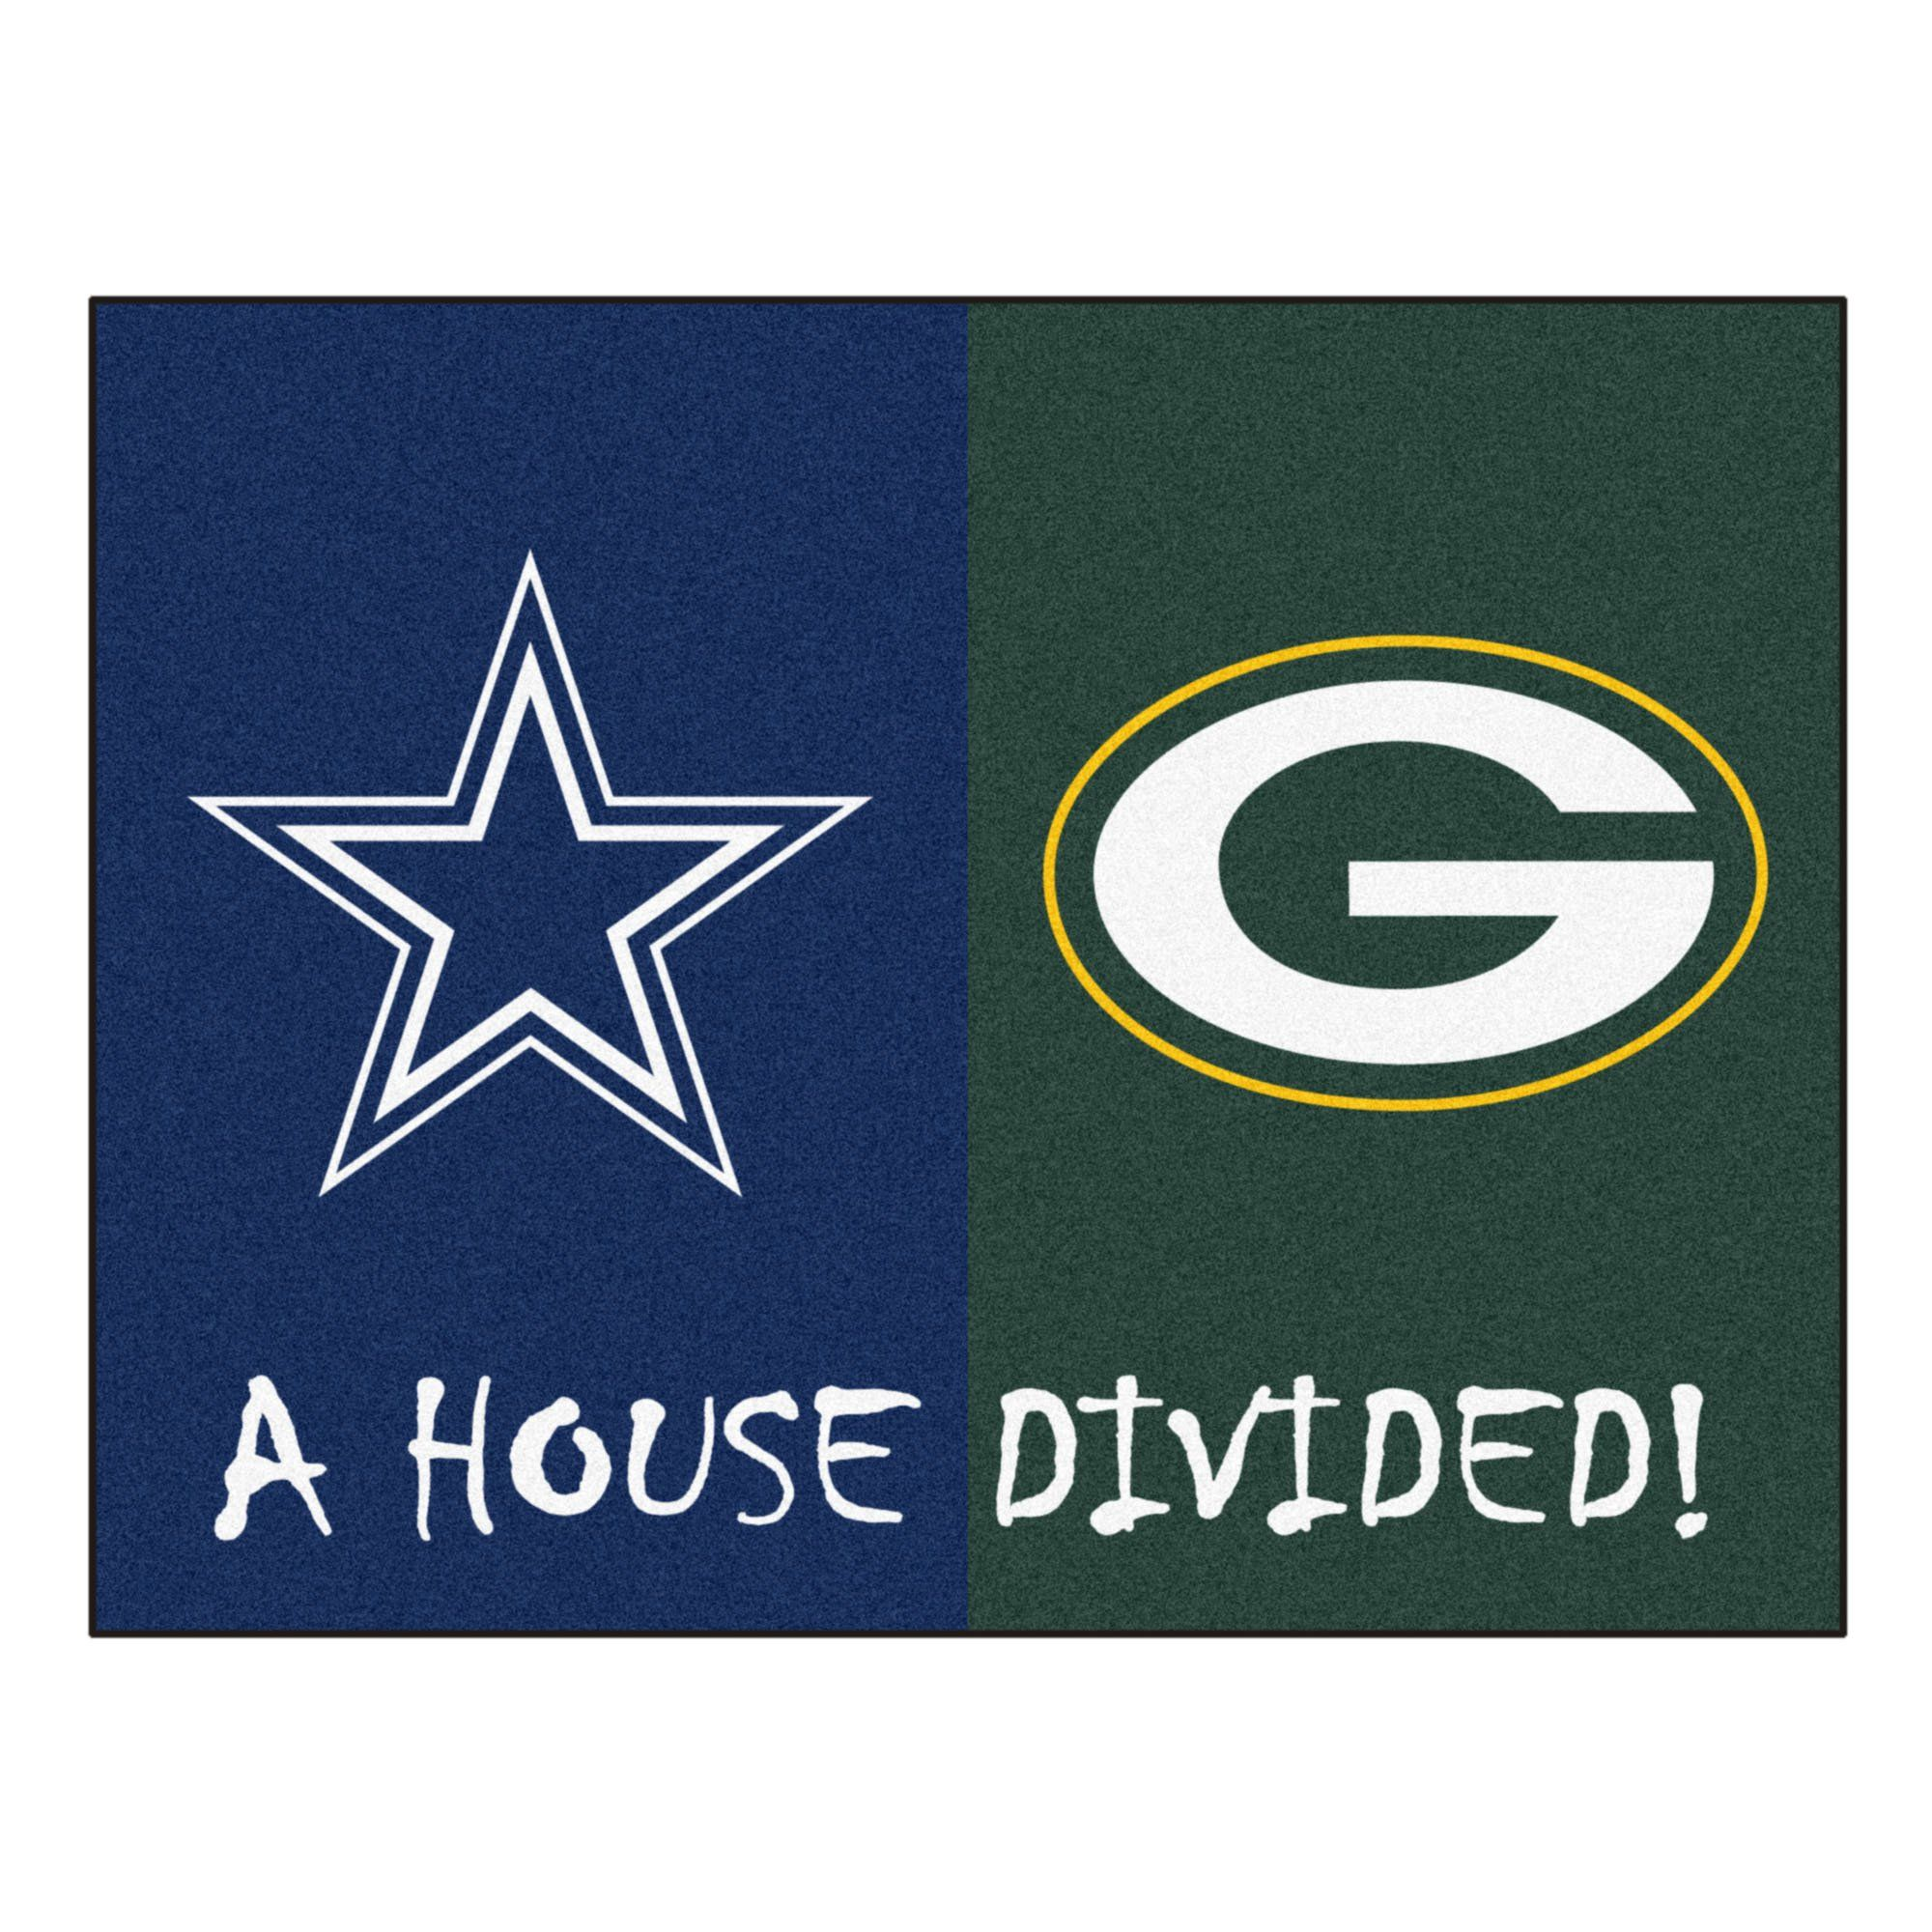 Green Bay Packers Custom Nfl Flag Banner 3x5 Ft 90x150cm Free Logo Design Packers Cowboys House Divided Bears Packers